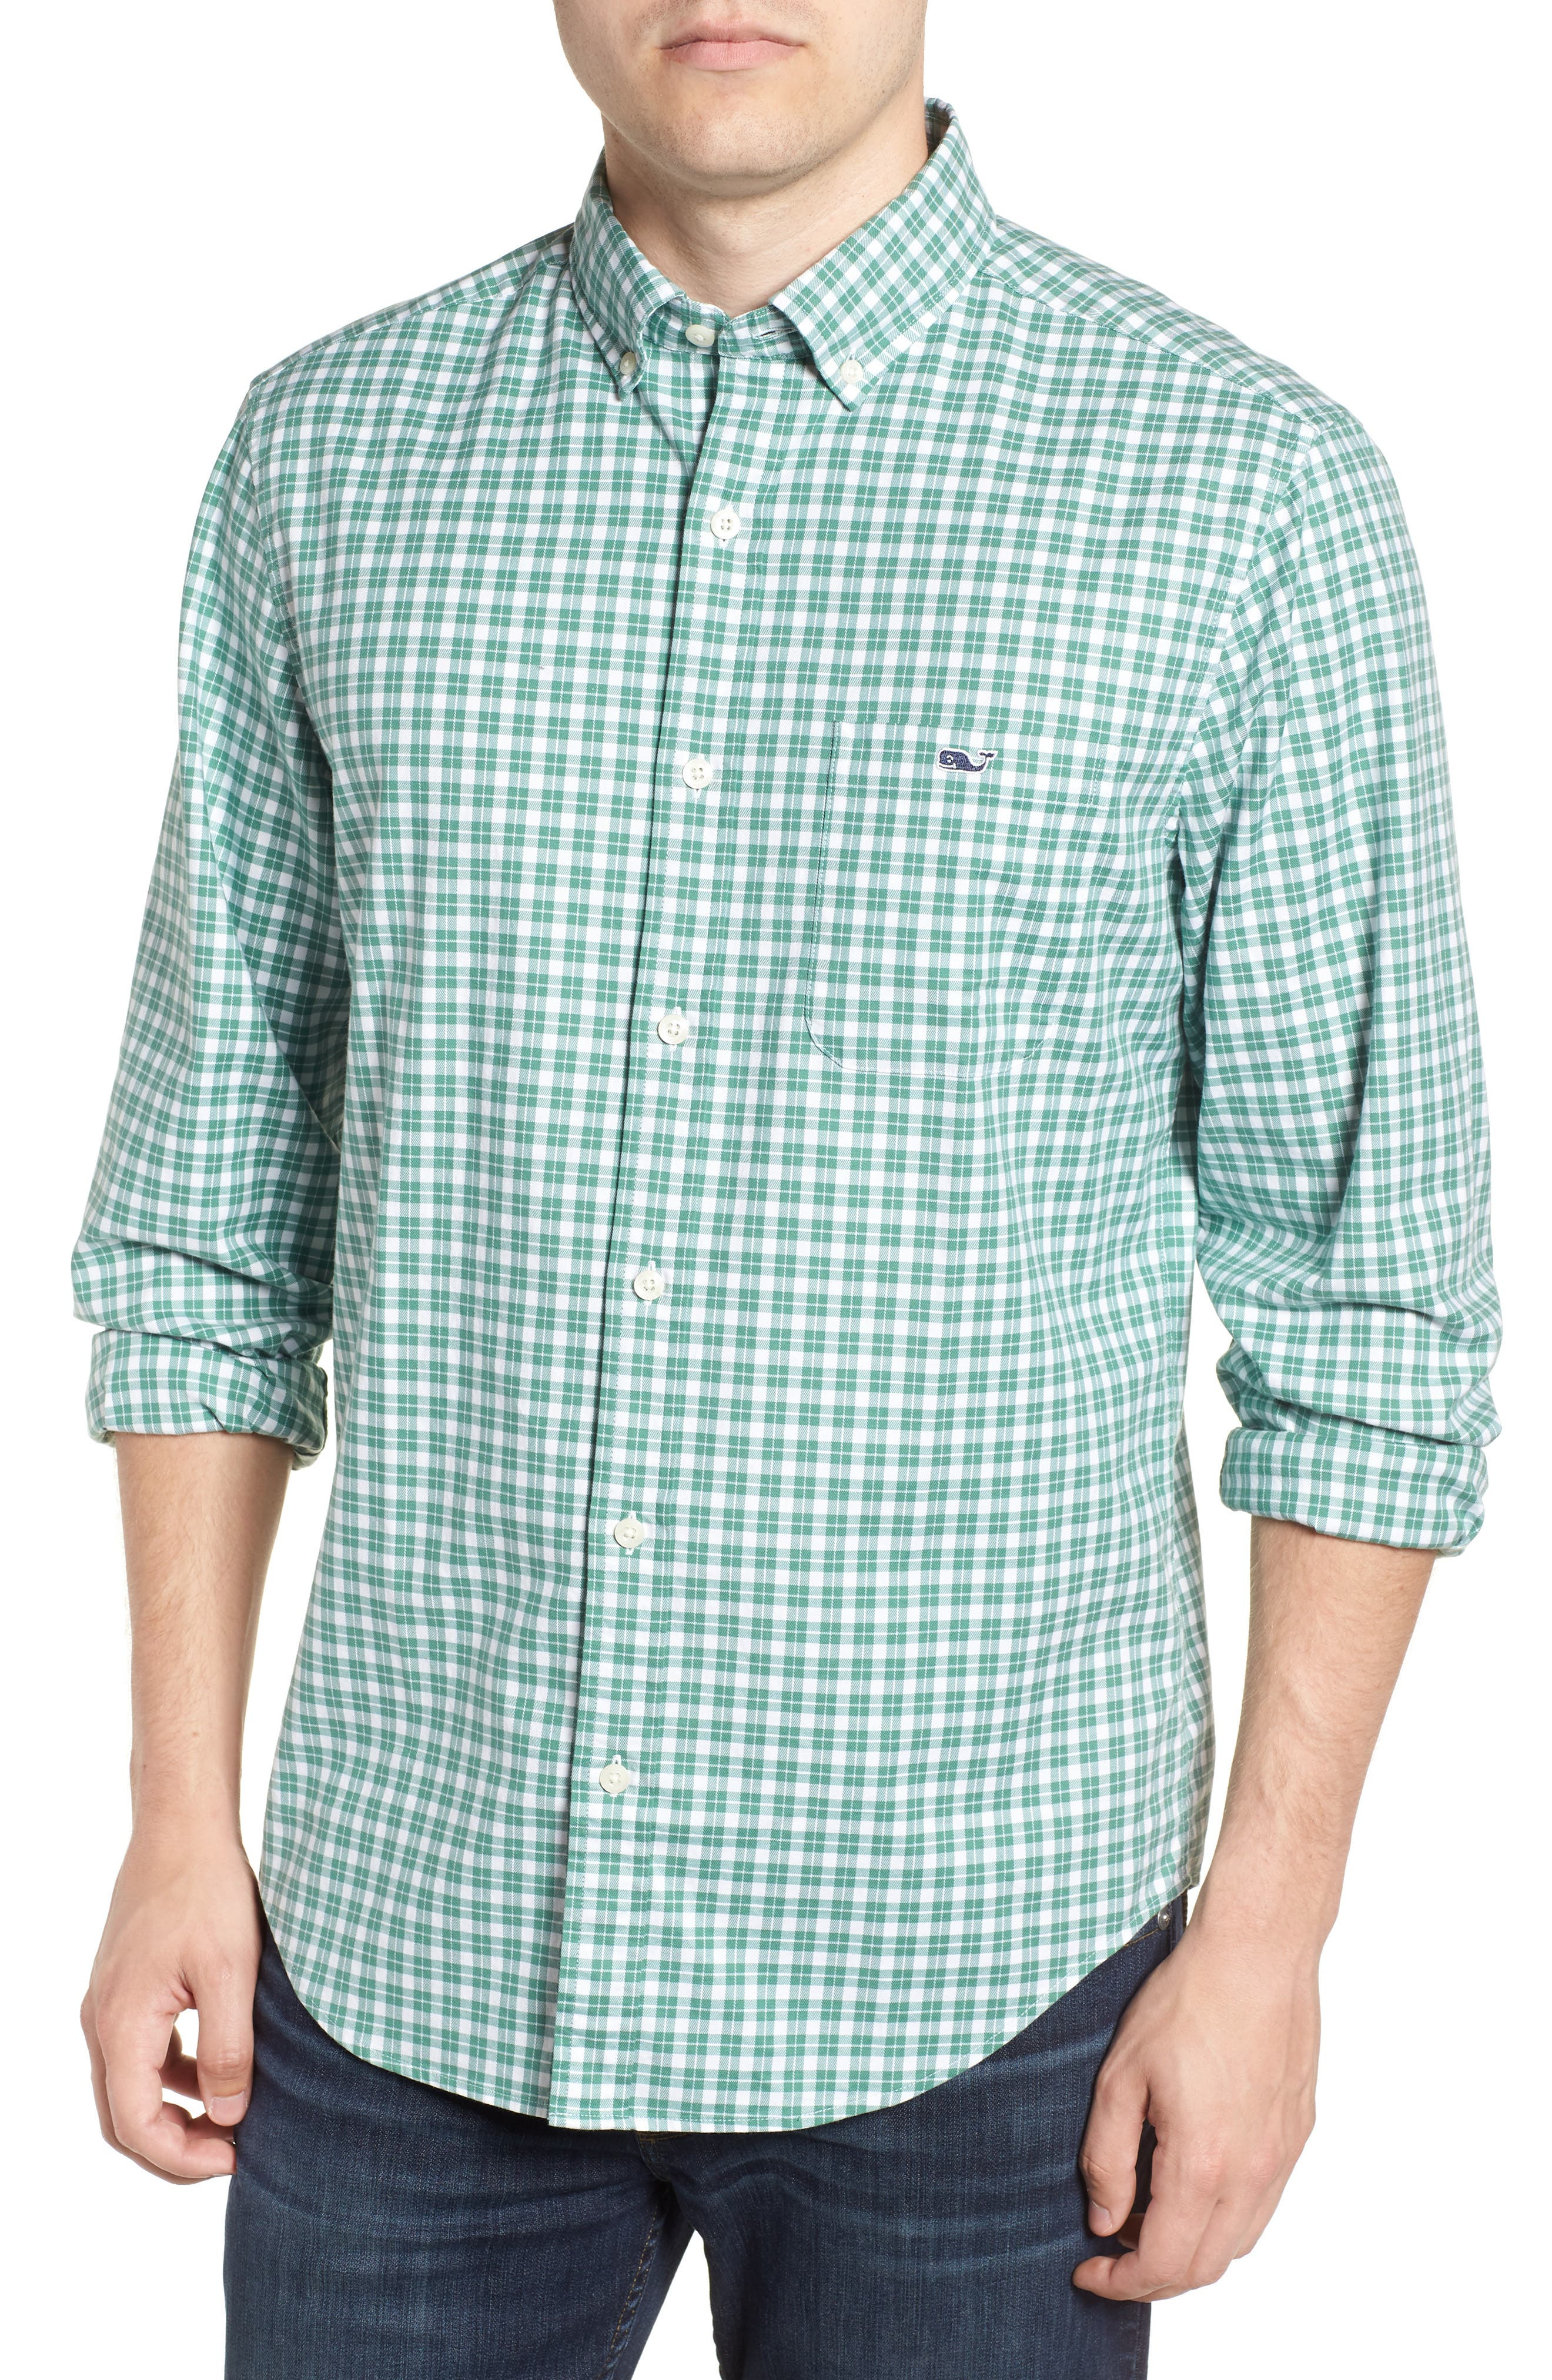 Eagle Hill Classic Fit Check Sport Shirt,                             Main thumbnail 1, color,                             STARBOARD GREEN